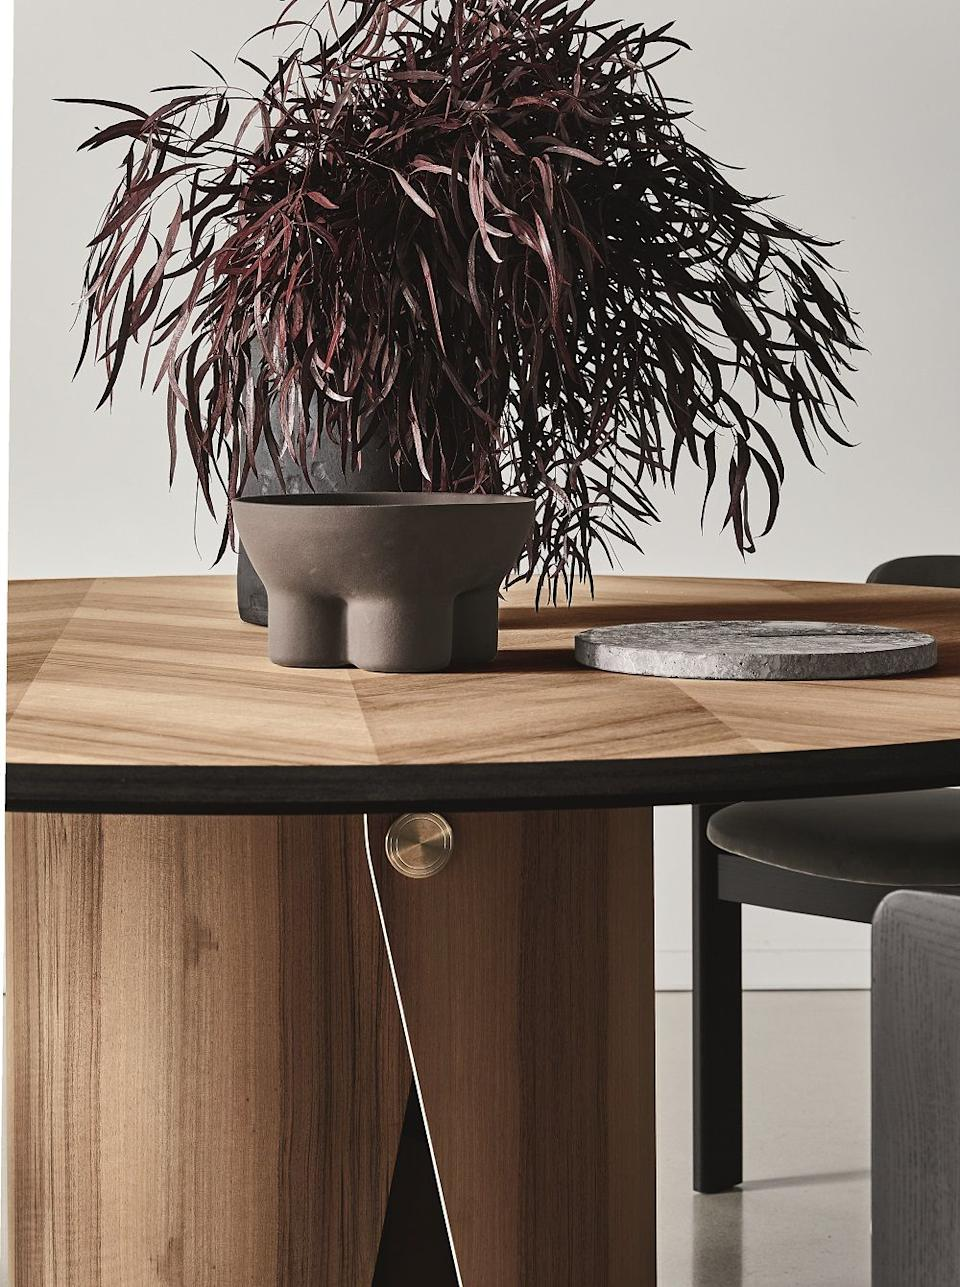 Photo credit: Courtesy Photo Gallotti&Radice